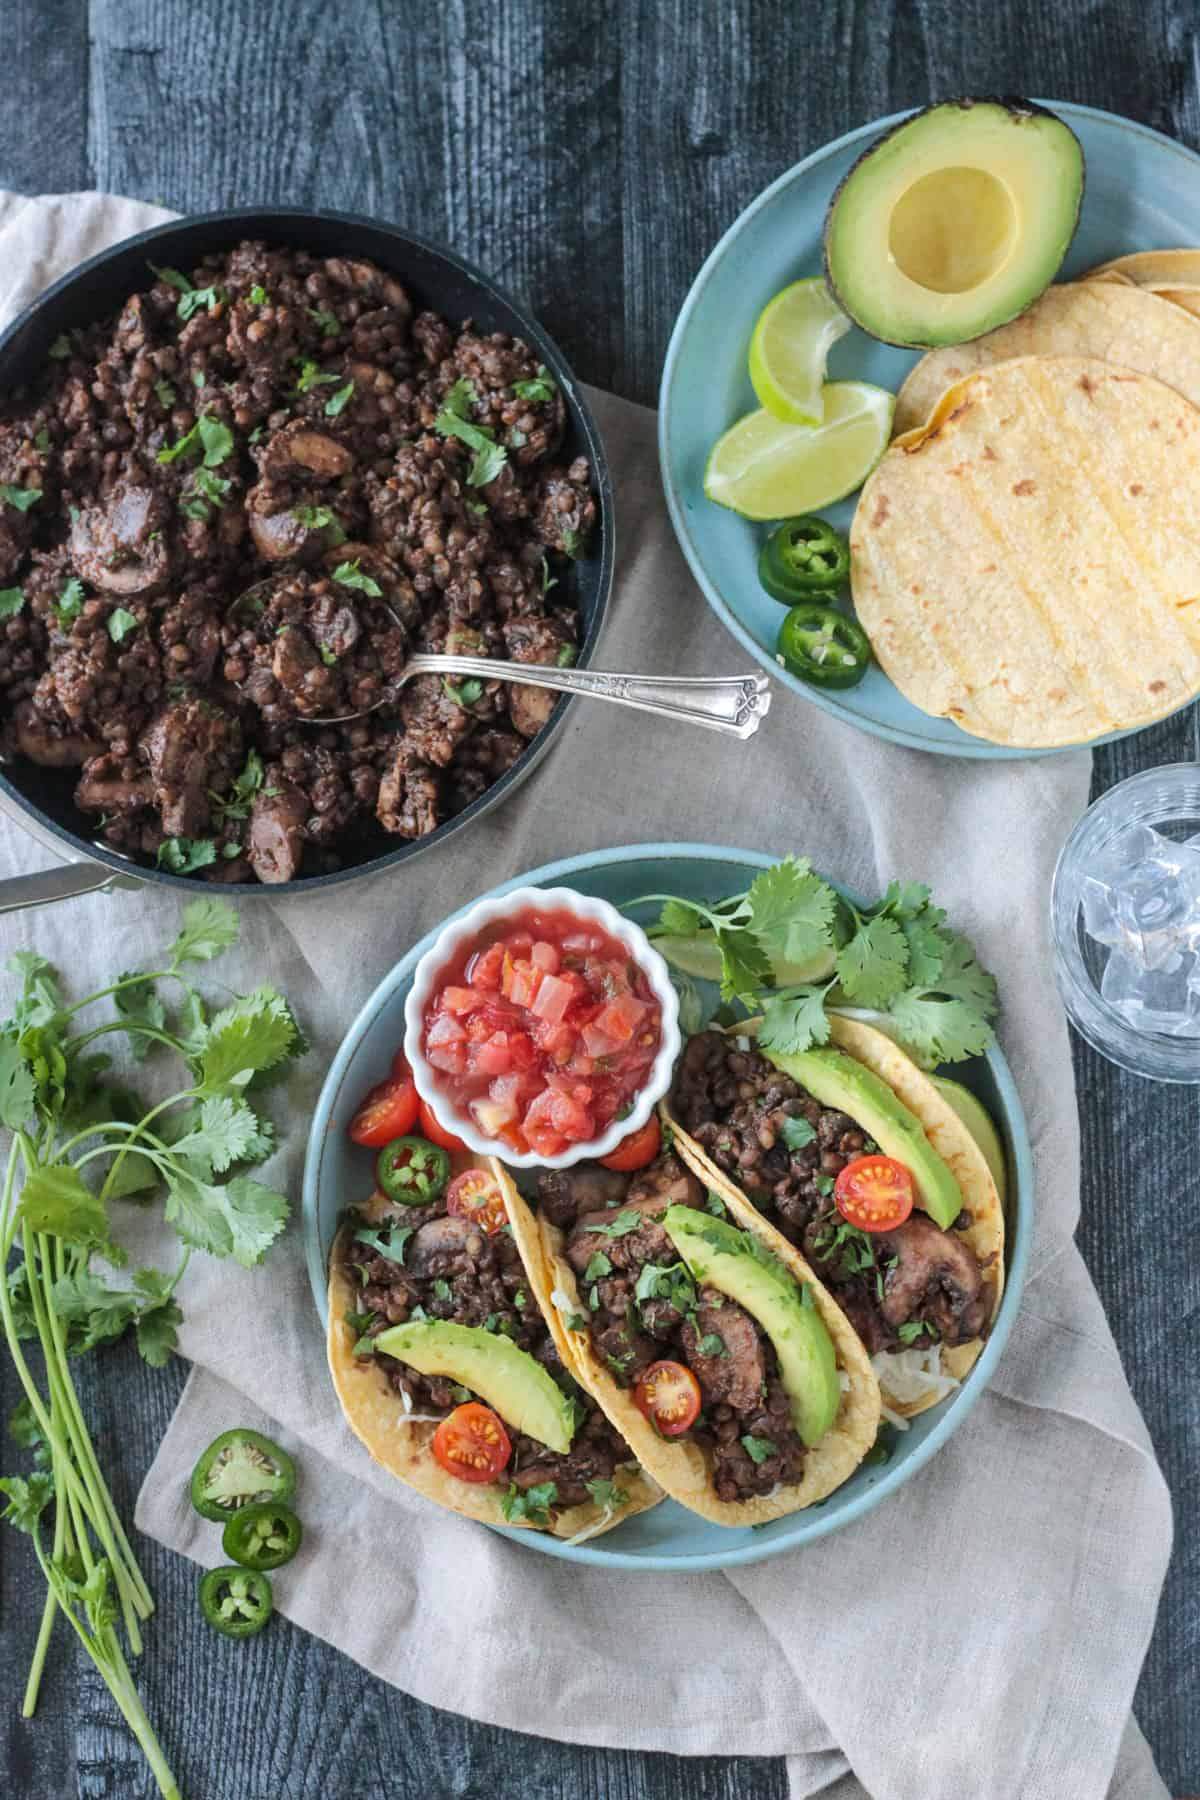 Lentil mushroom taco meat in a skillet next to a plate of tacos.